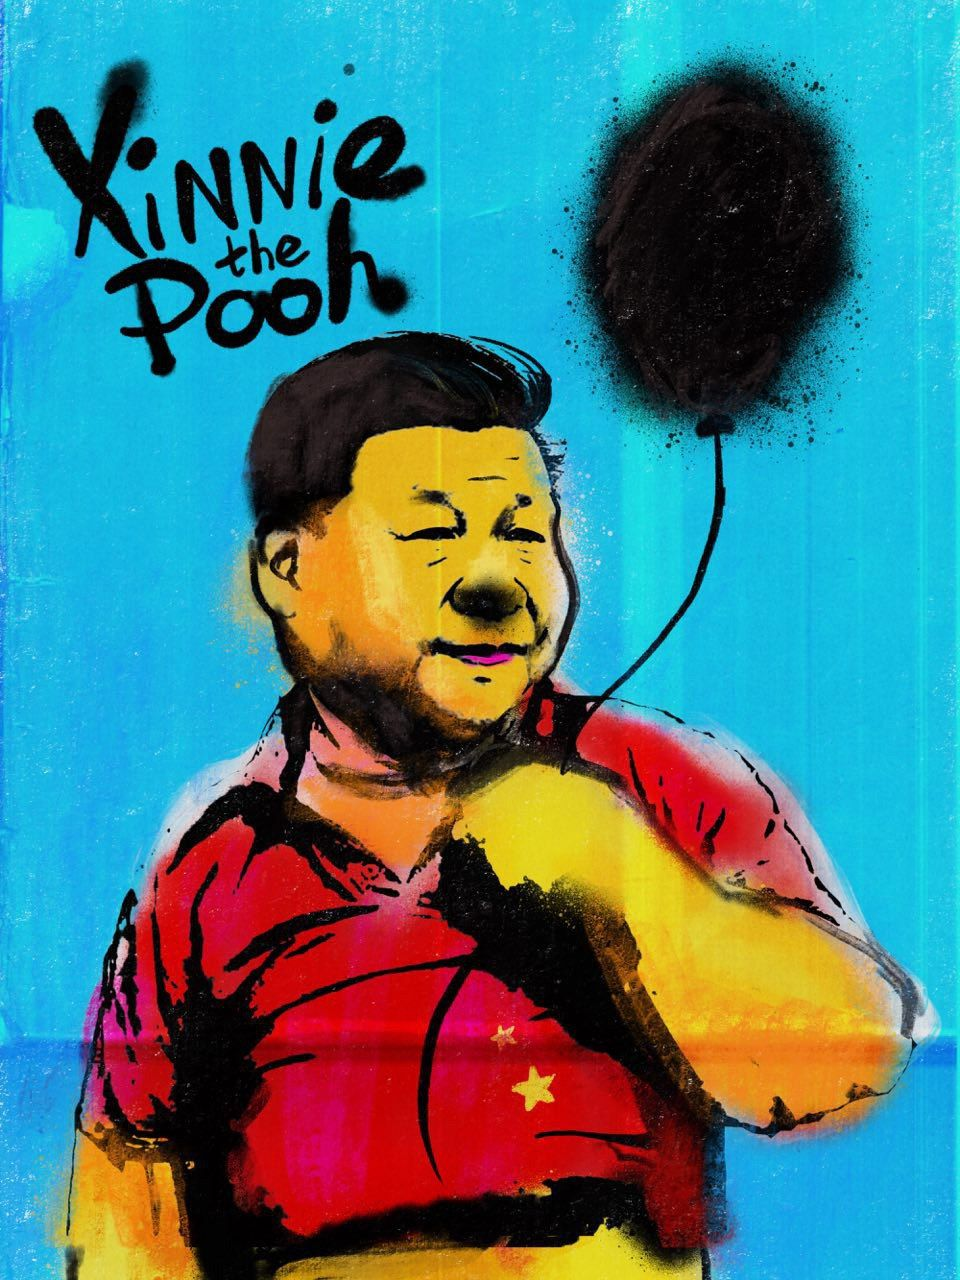 Xinnie the pool hk pomo tg channel painting 2019 Lovers